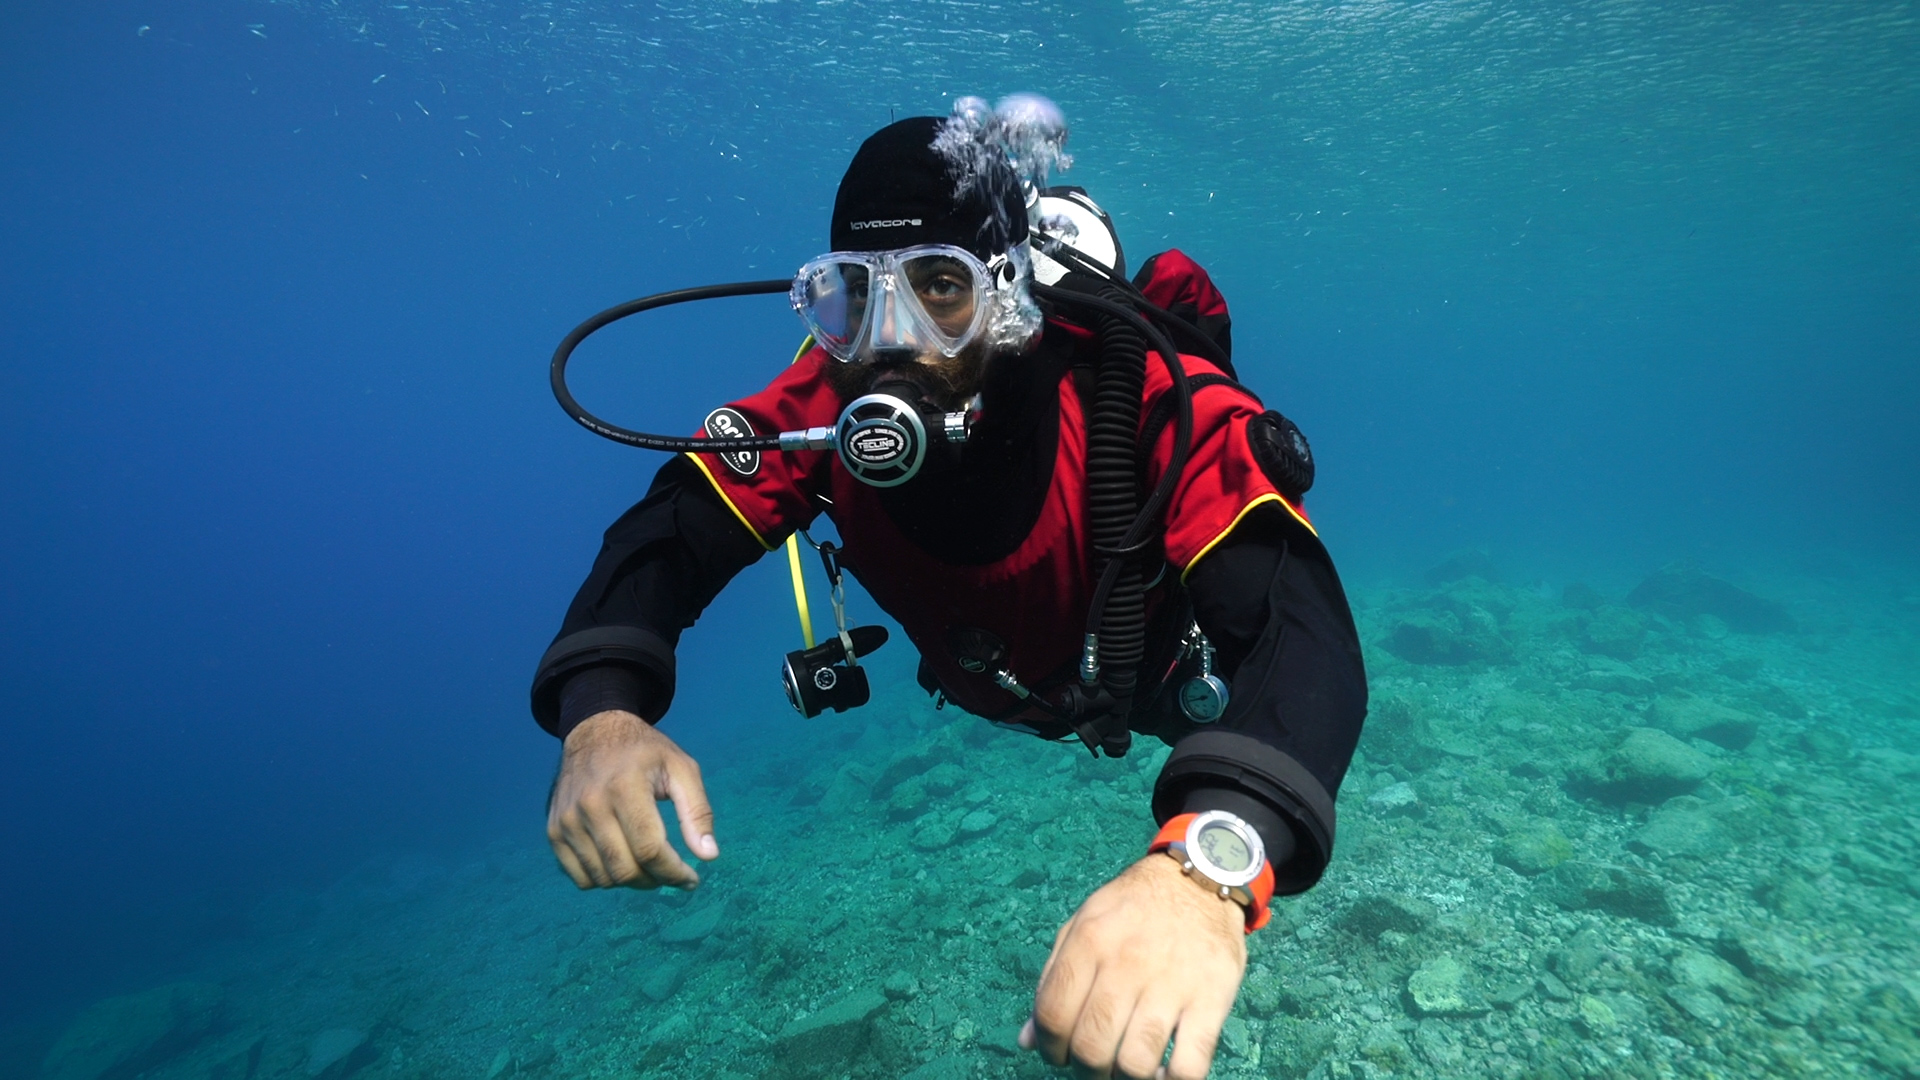 Scuba diver breathing through regulator